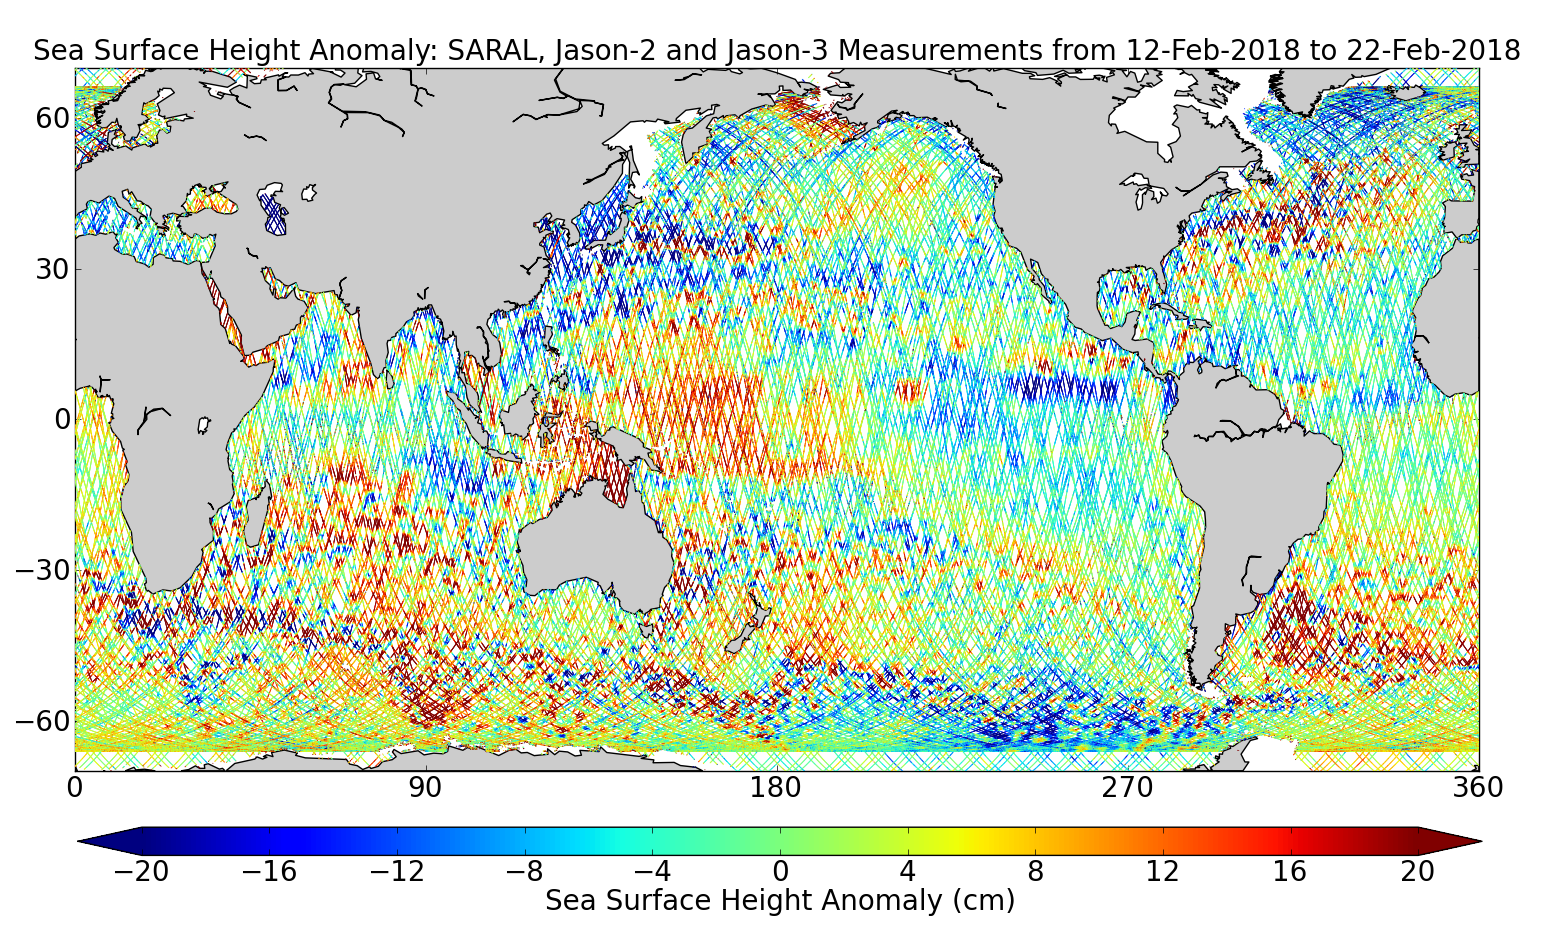 Sea Surface Height Anomaly: SARAL, Jason-2 and Jason-3 Measurements from 12-Feb-2018 to 22-Feb-2018